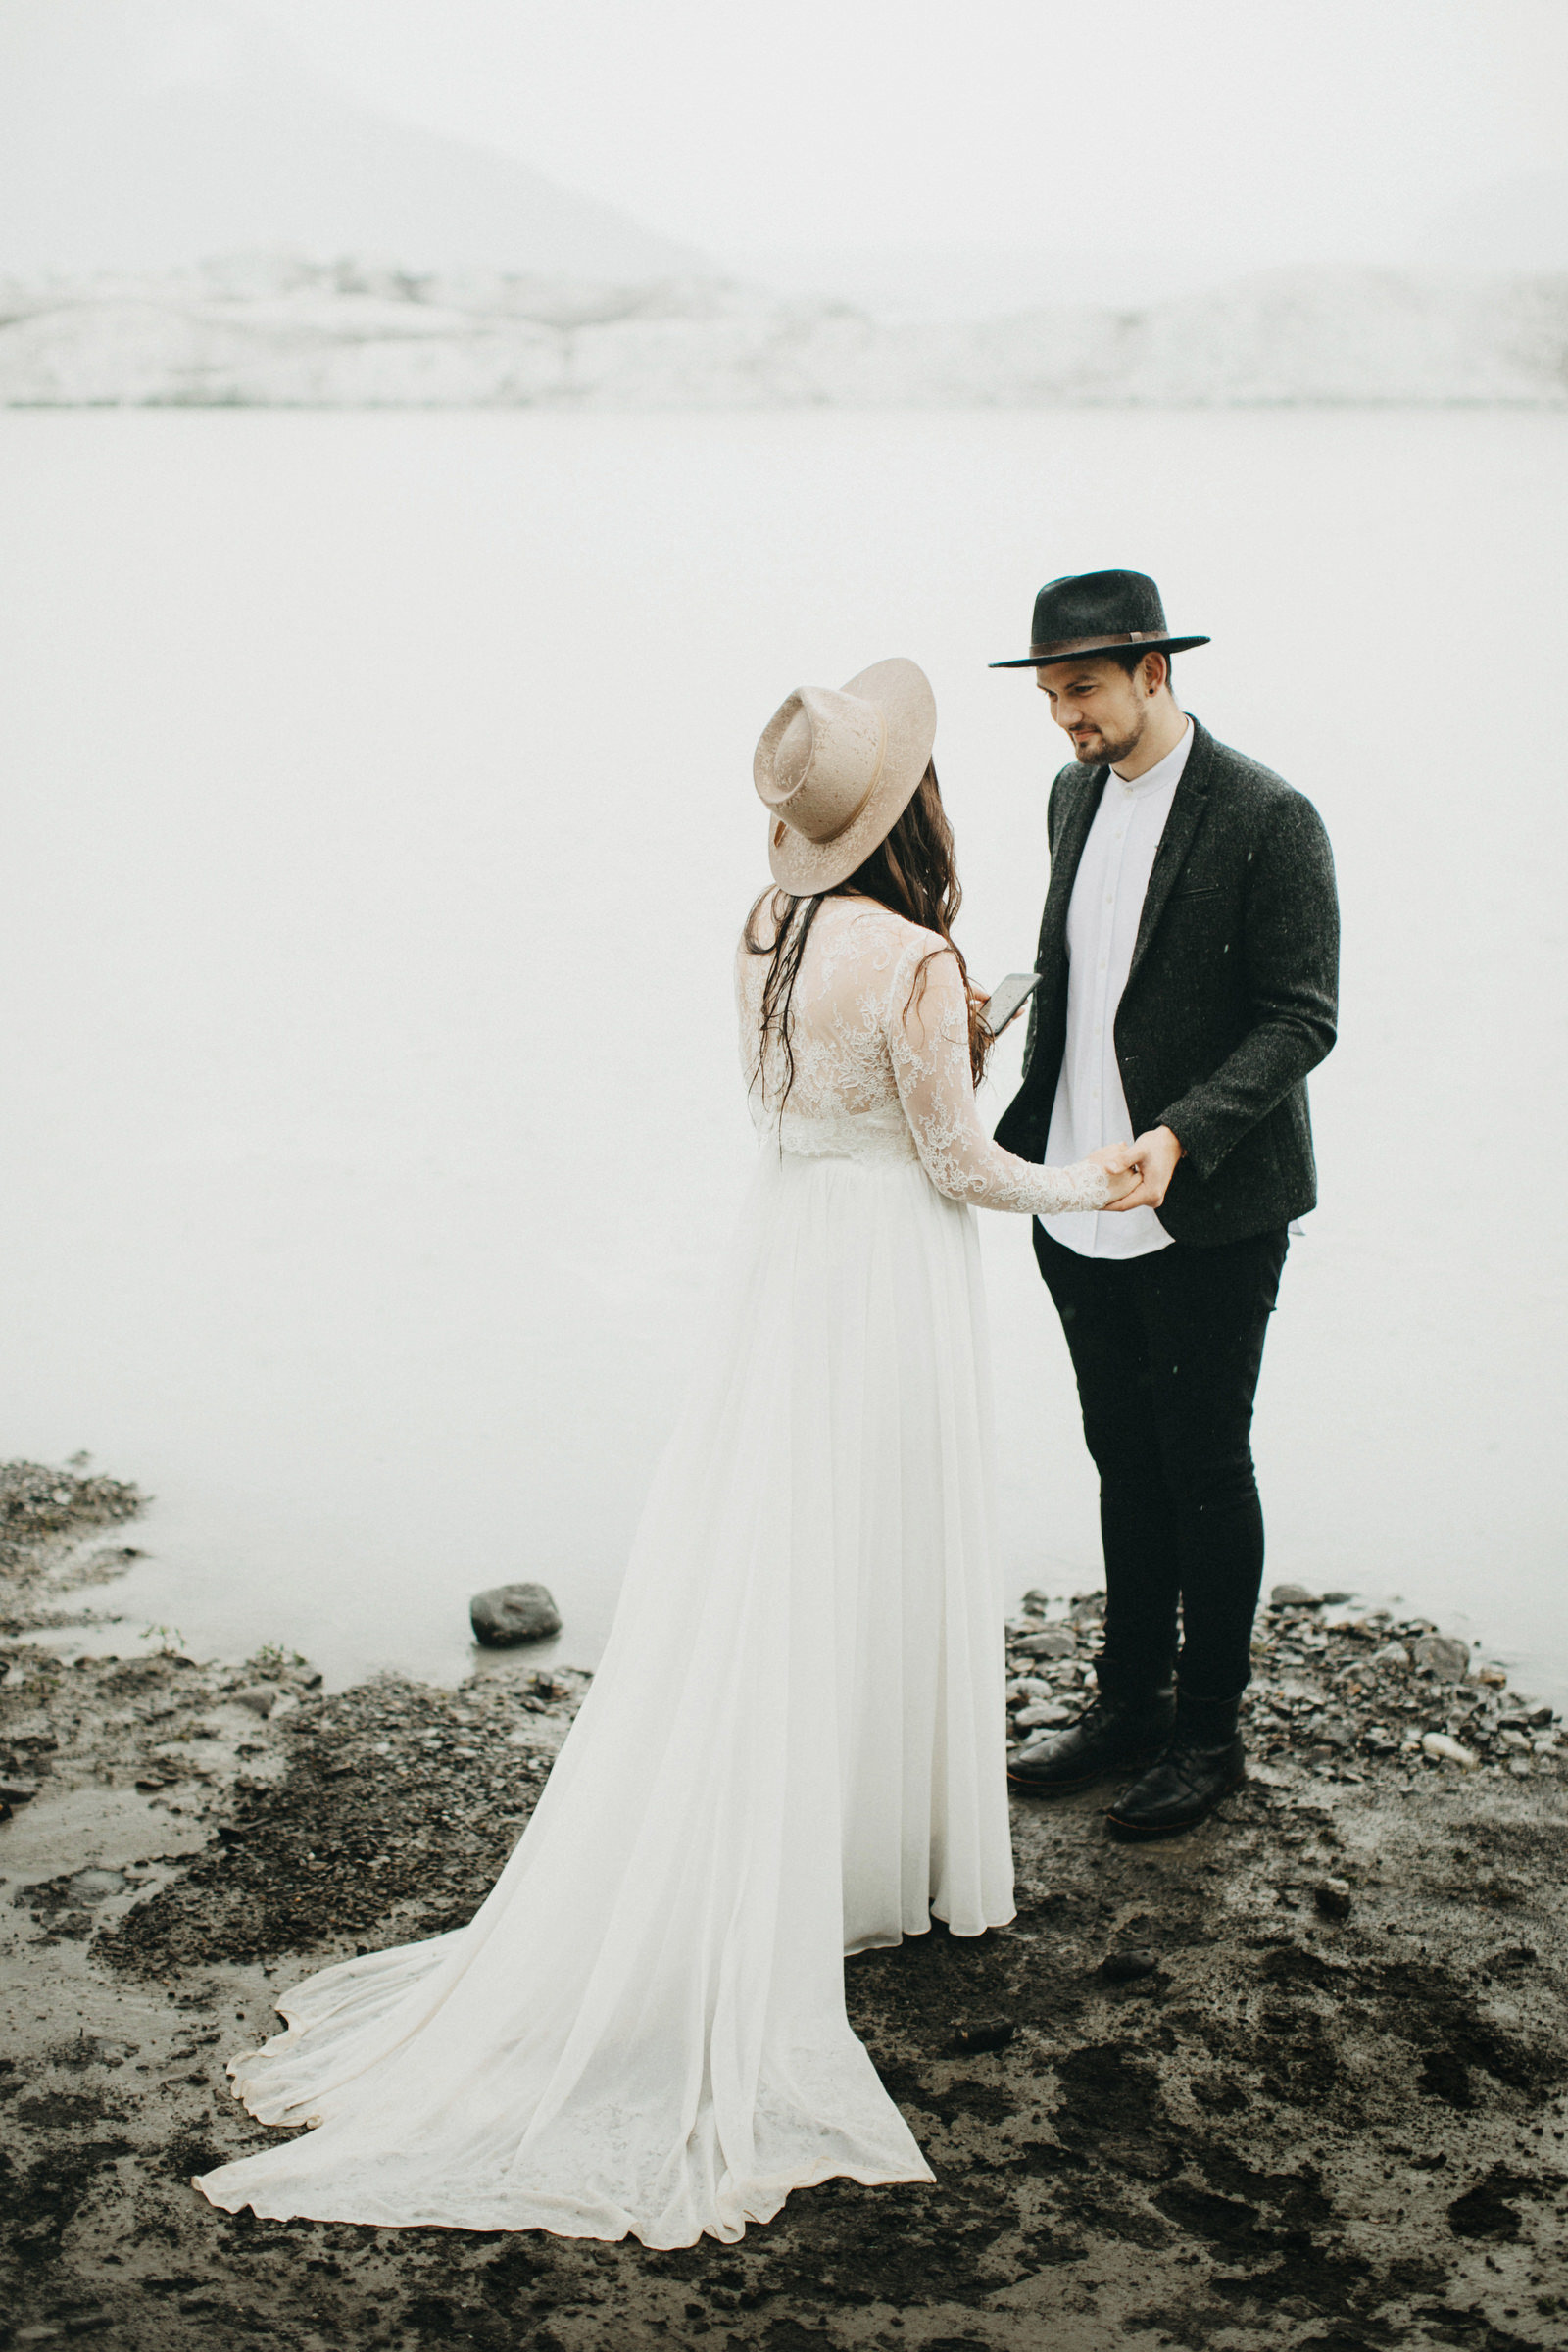 athena-and-camron-alaska-elopement-wedding-inspiration-india-earl-athena-grace-glacier-lagoon-wedding80